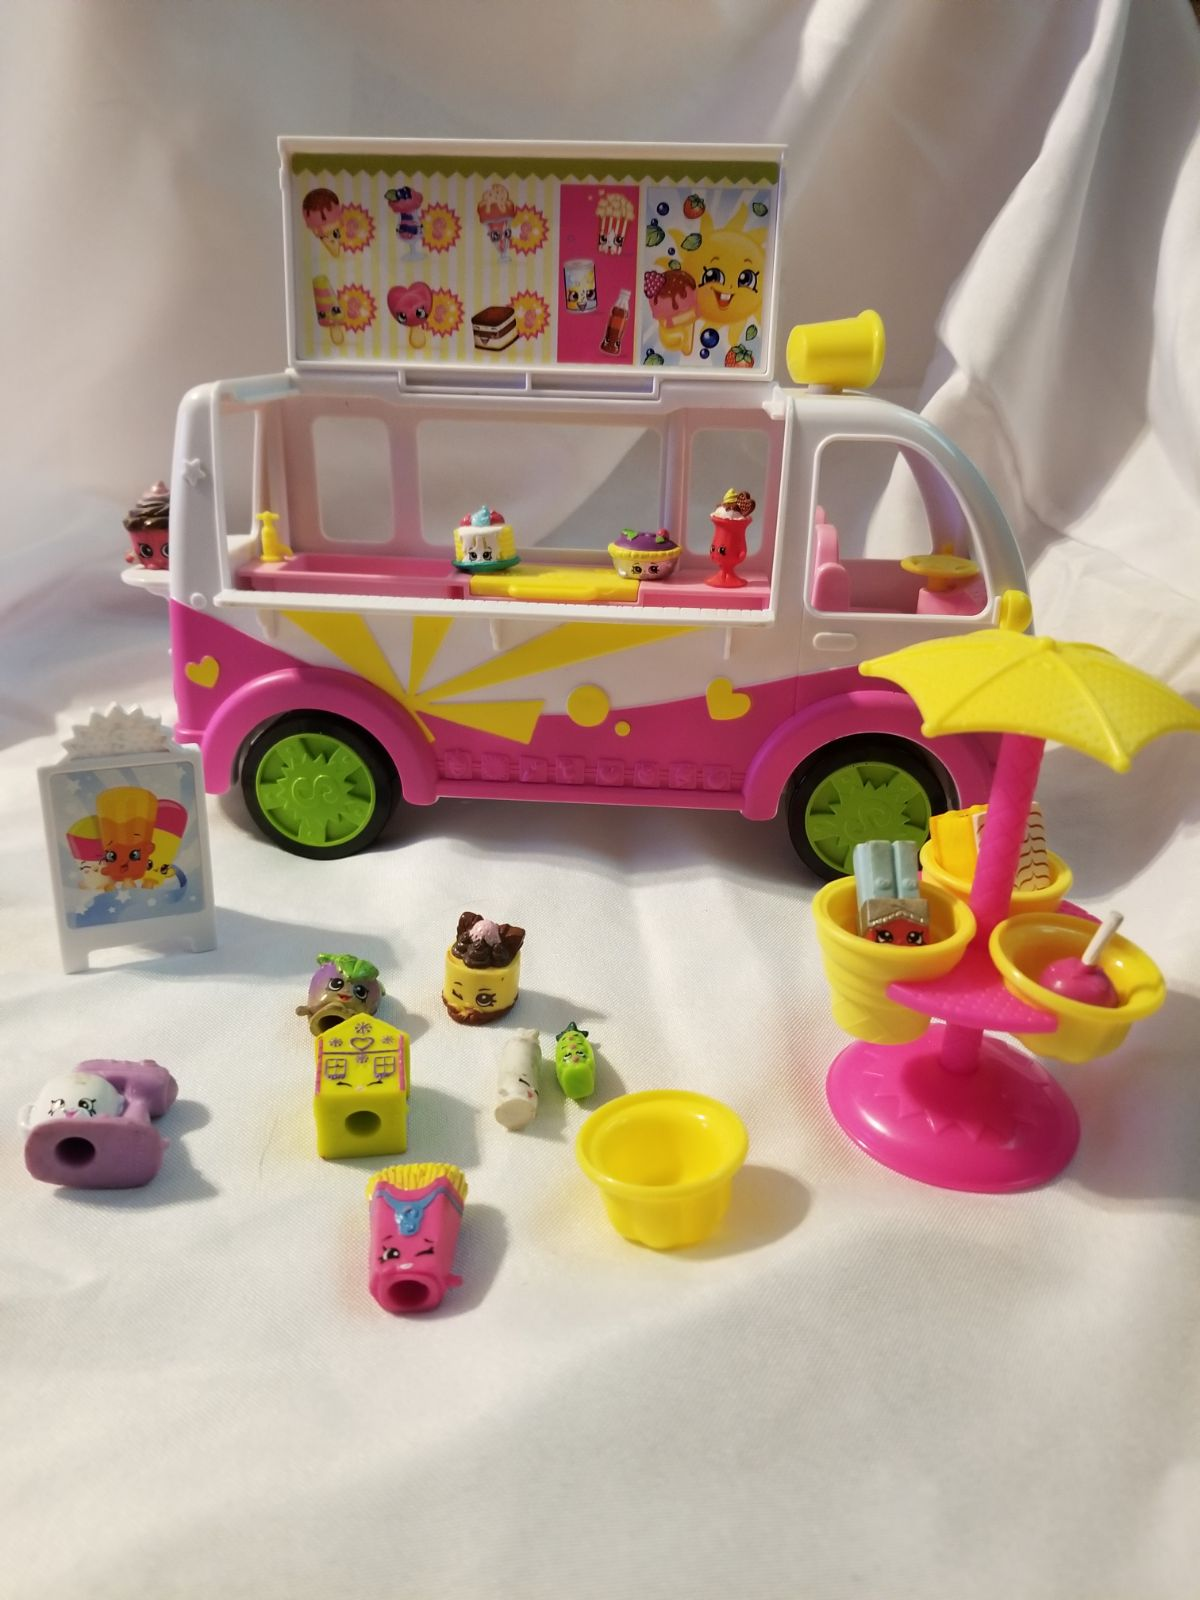 Shopkins toys and food truck